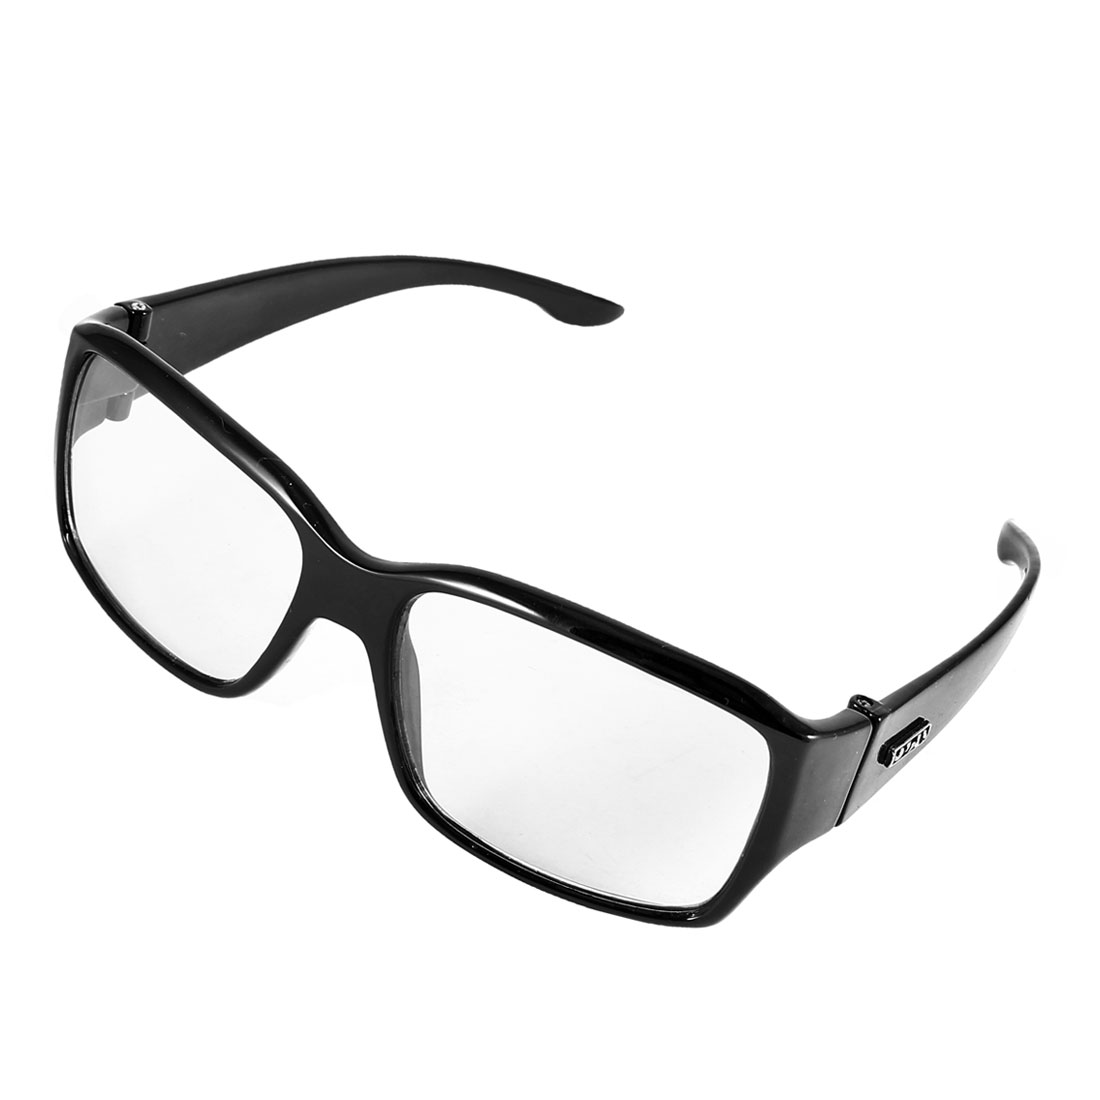 Black Plastic Full Frame Light Gray Lens Plain Glasses Eyeglasses for Men